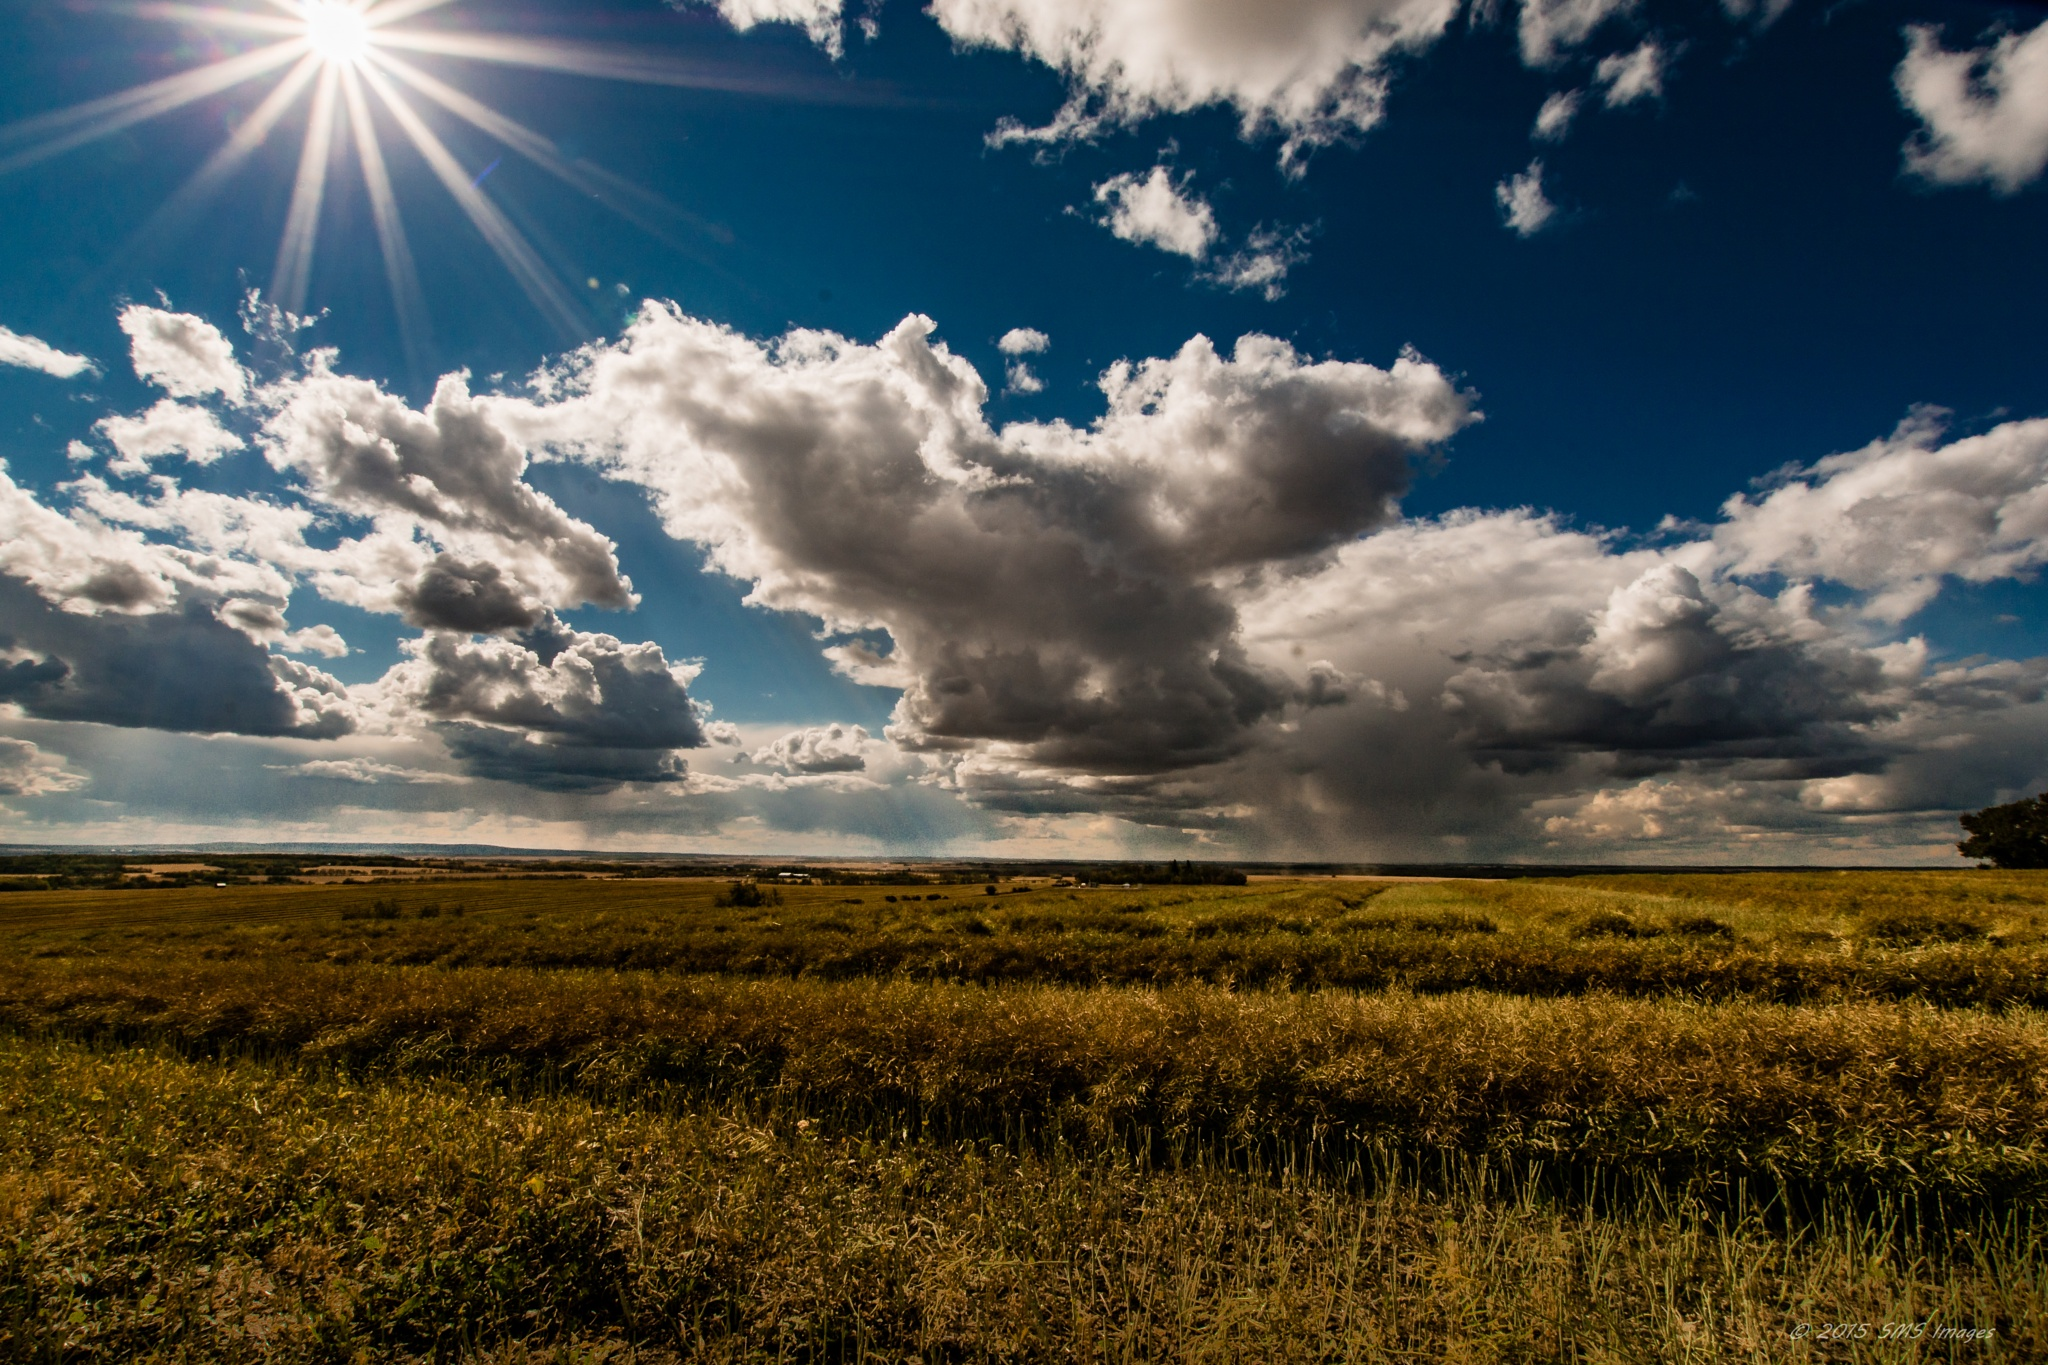 Clouds Show Us the Value of the Sun :-) by SteveMumert